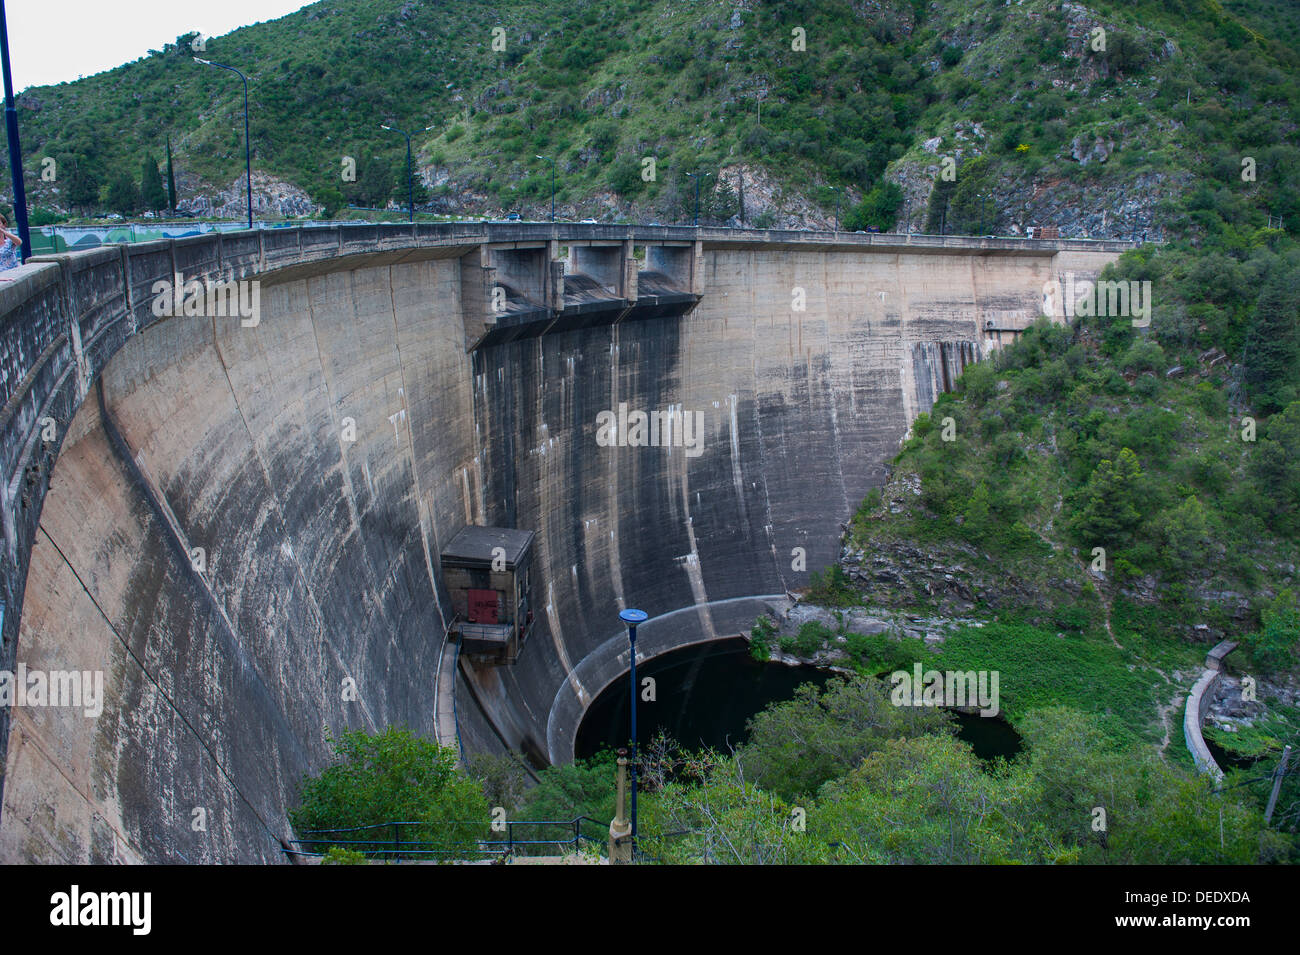 Los Molinas dam near Villa General Belgrano, Argentina, South America - Stock Image